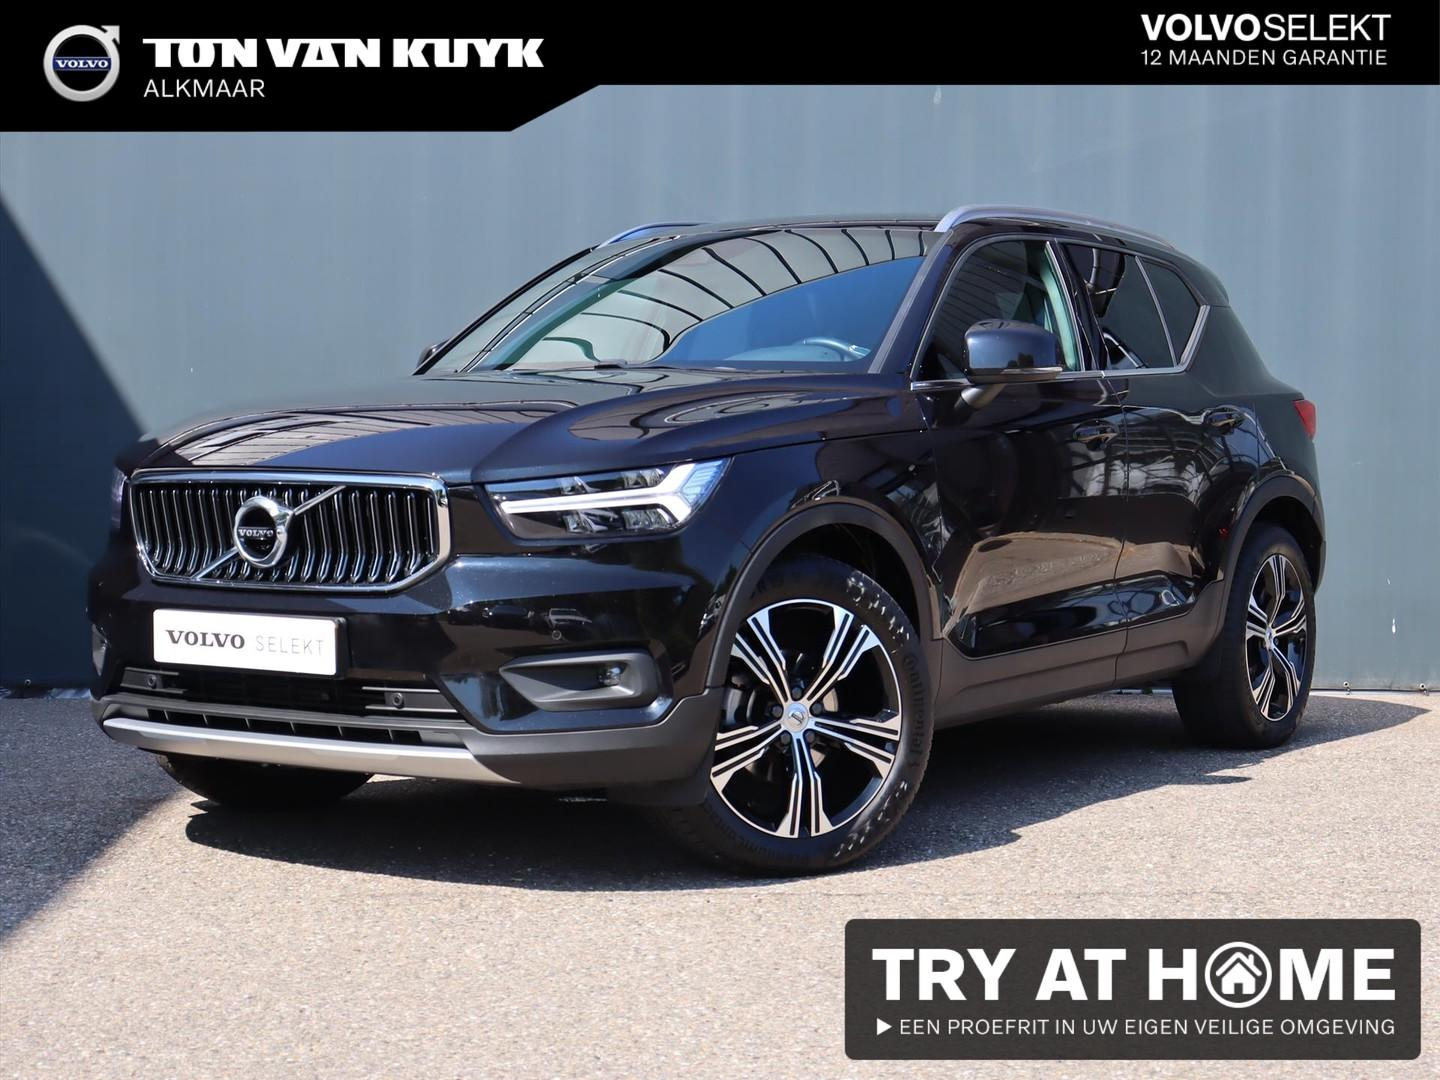 Volvo Xc40 D3 150pk aut. inscription / intellisafe / versitality / verwarmbaar voorraam